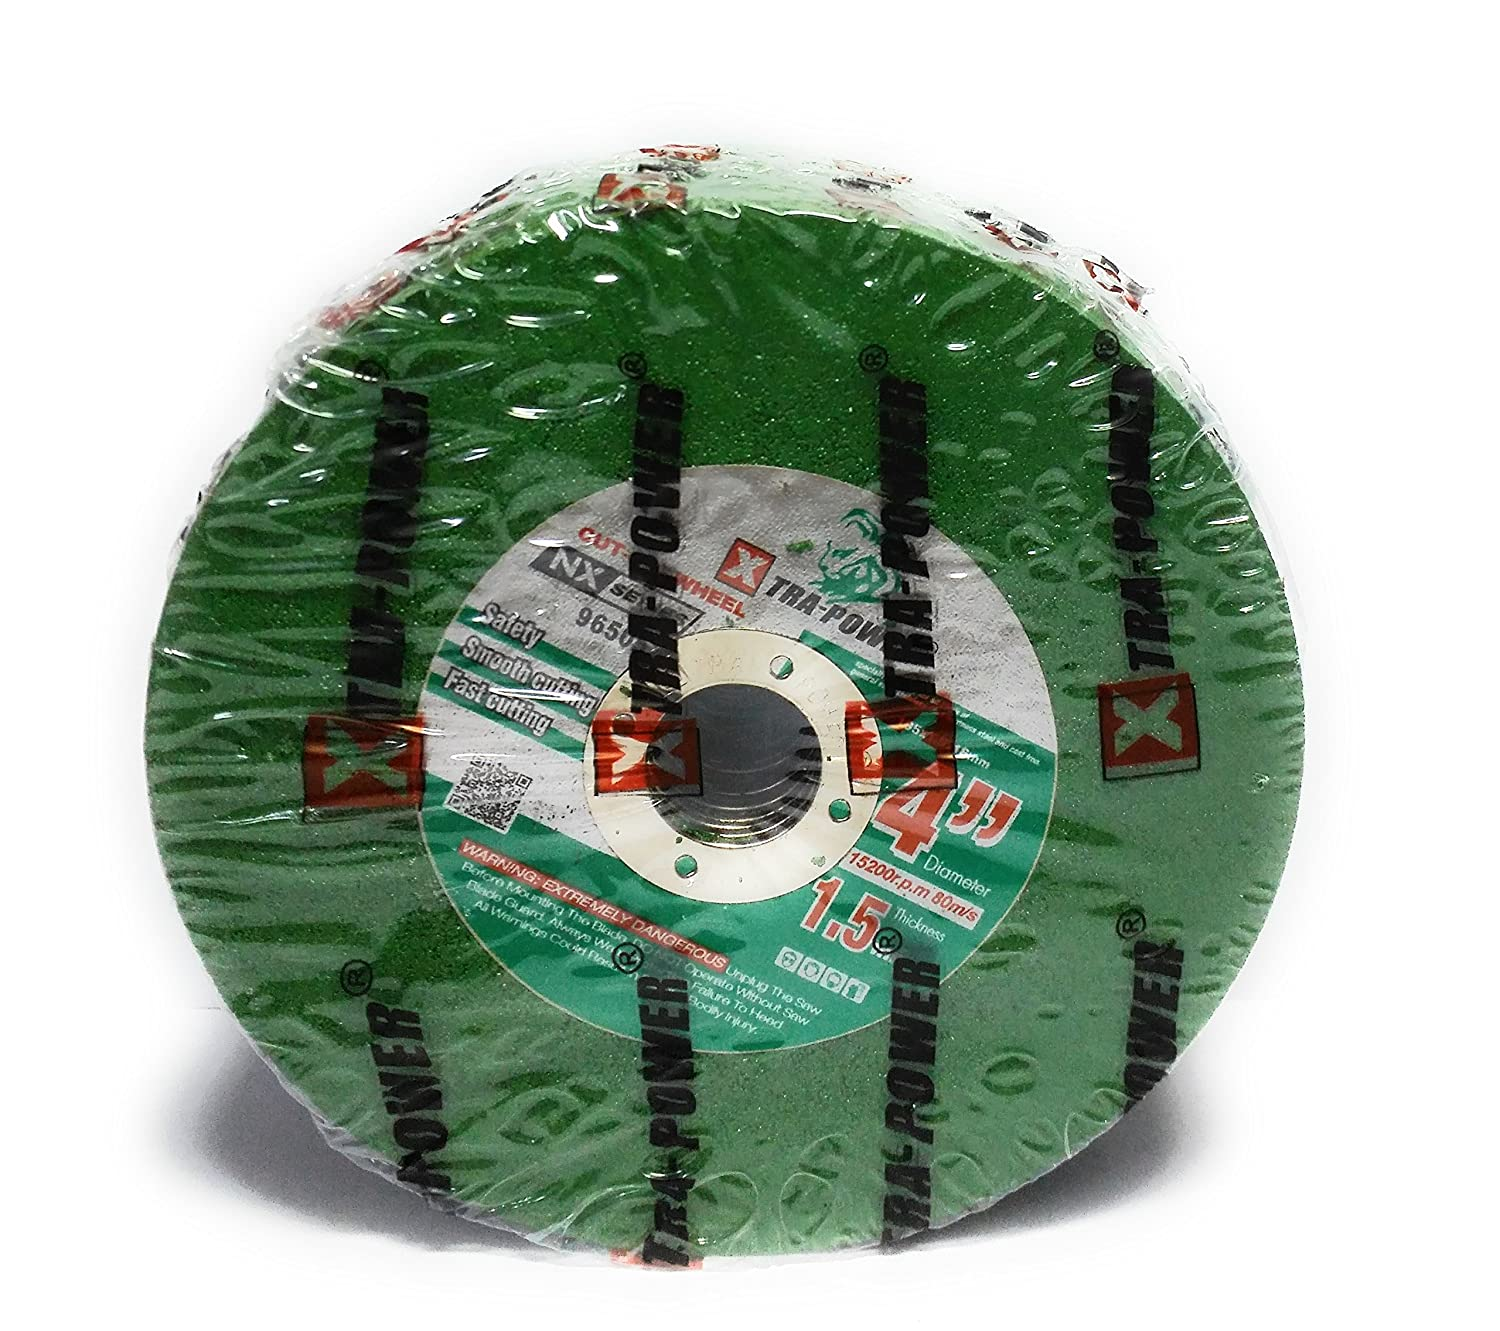 Tool House (Xtra-Power) Cutting Wheel (Green, 4-inch) - Pack of 50 Pieces